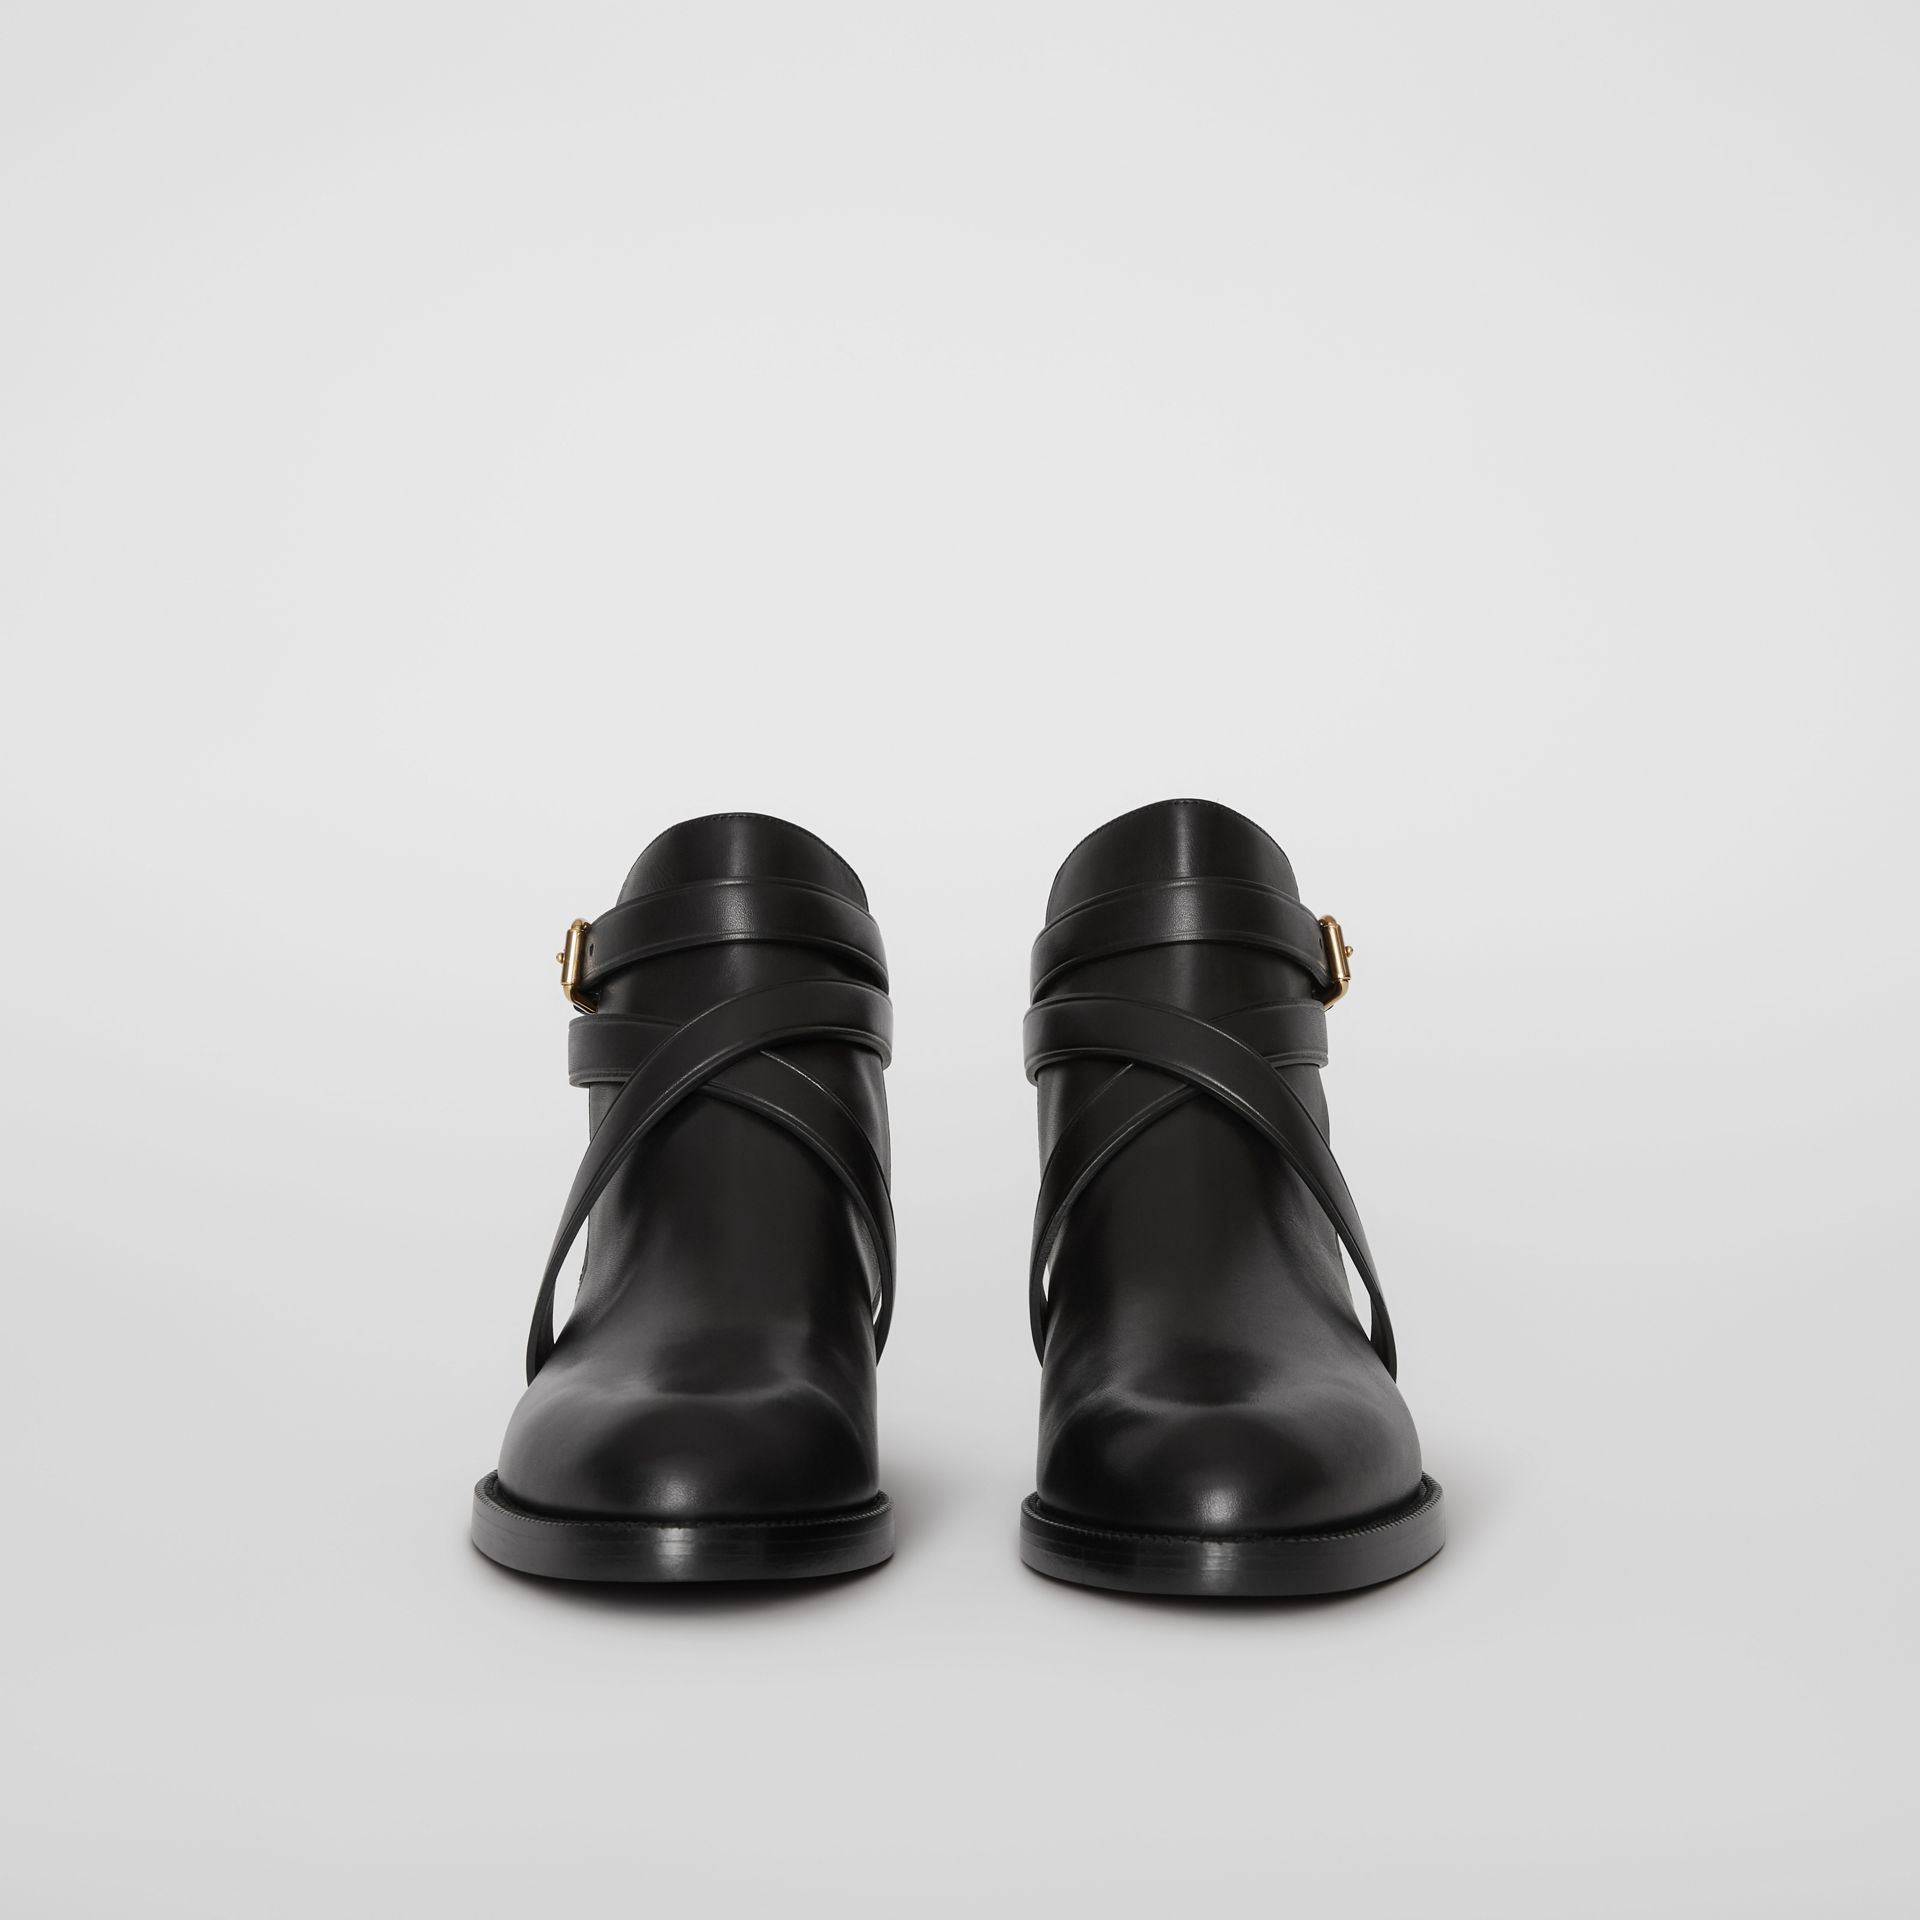 House Check and Leather Ankle Boots in Black - Women | Burberry Australia - gallery image 3